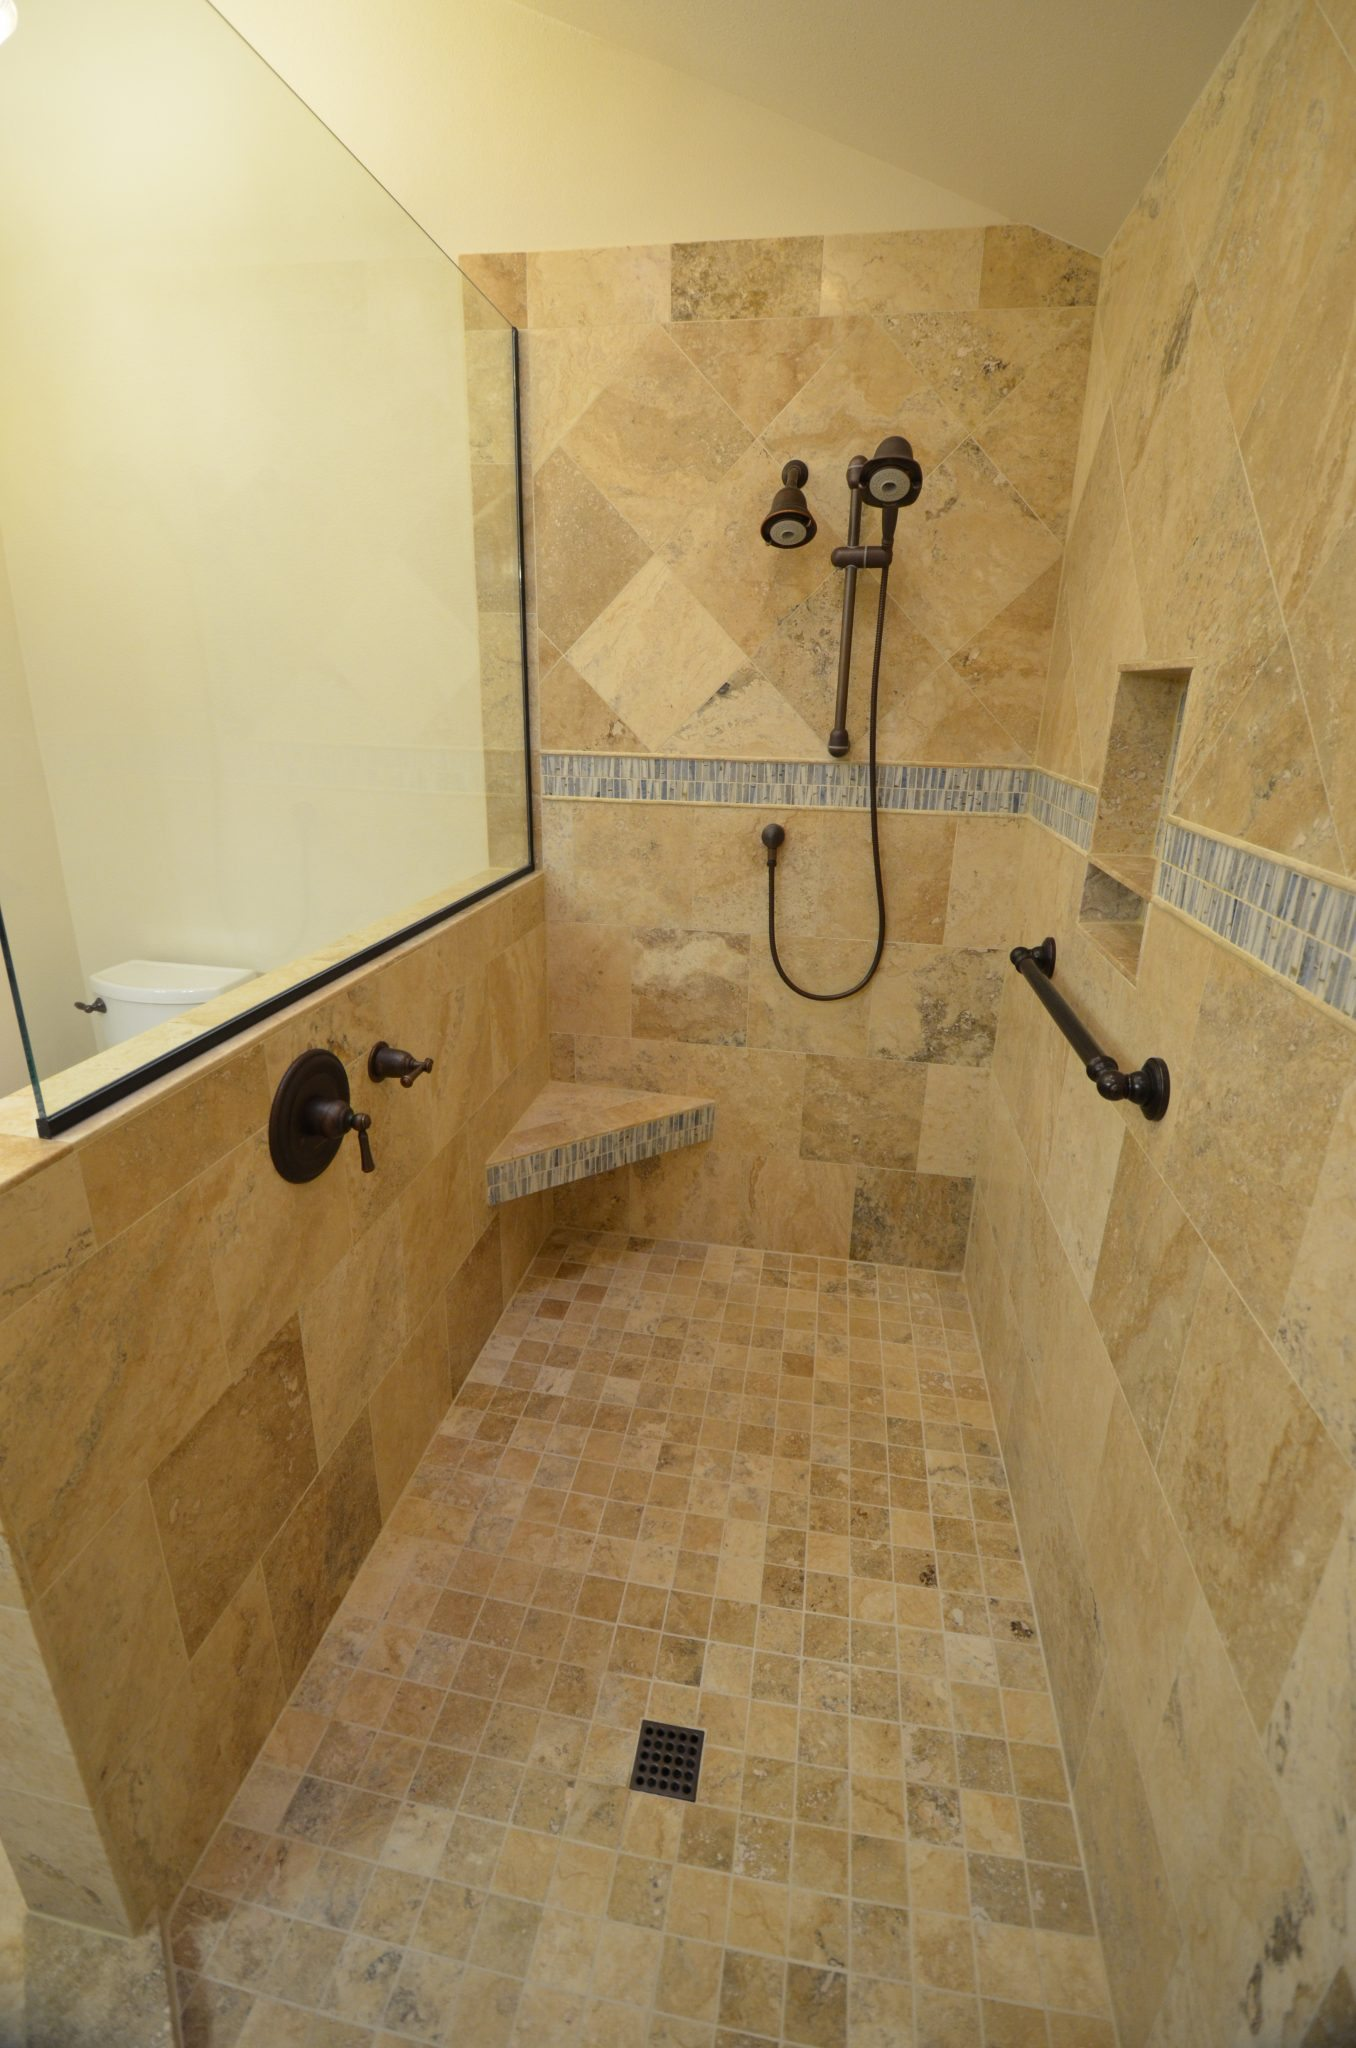 Doorless shower dale 39 s remodeling salem oregon dale 39 s remodeling salem oregon Bathroom remodeling ideas shower stalls